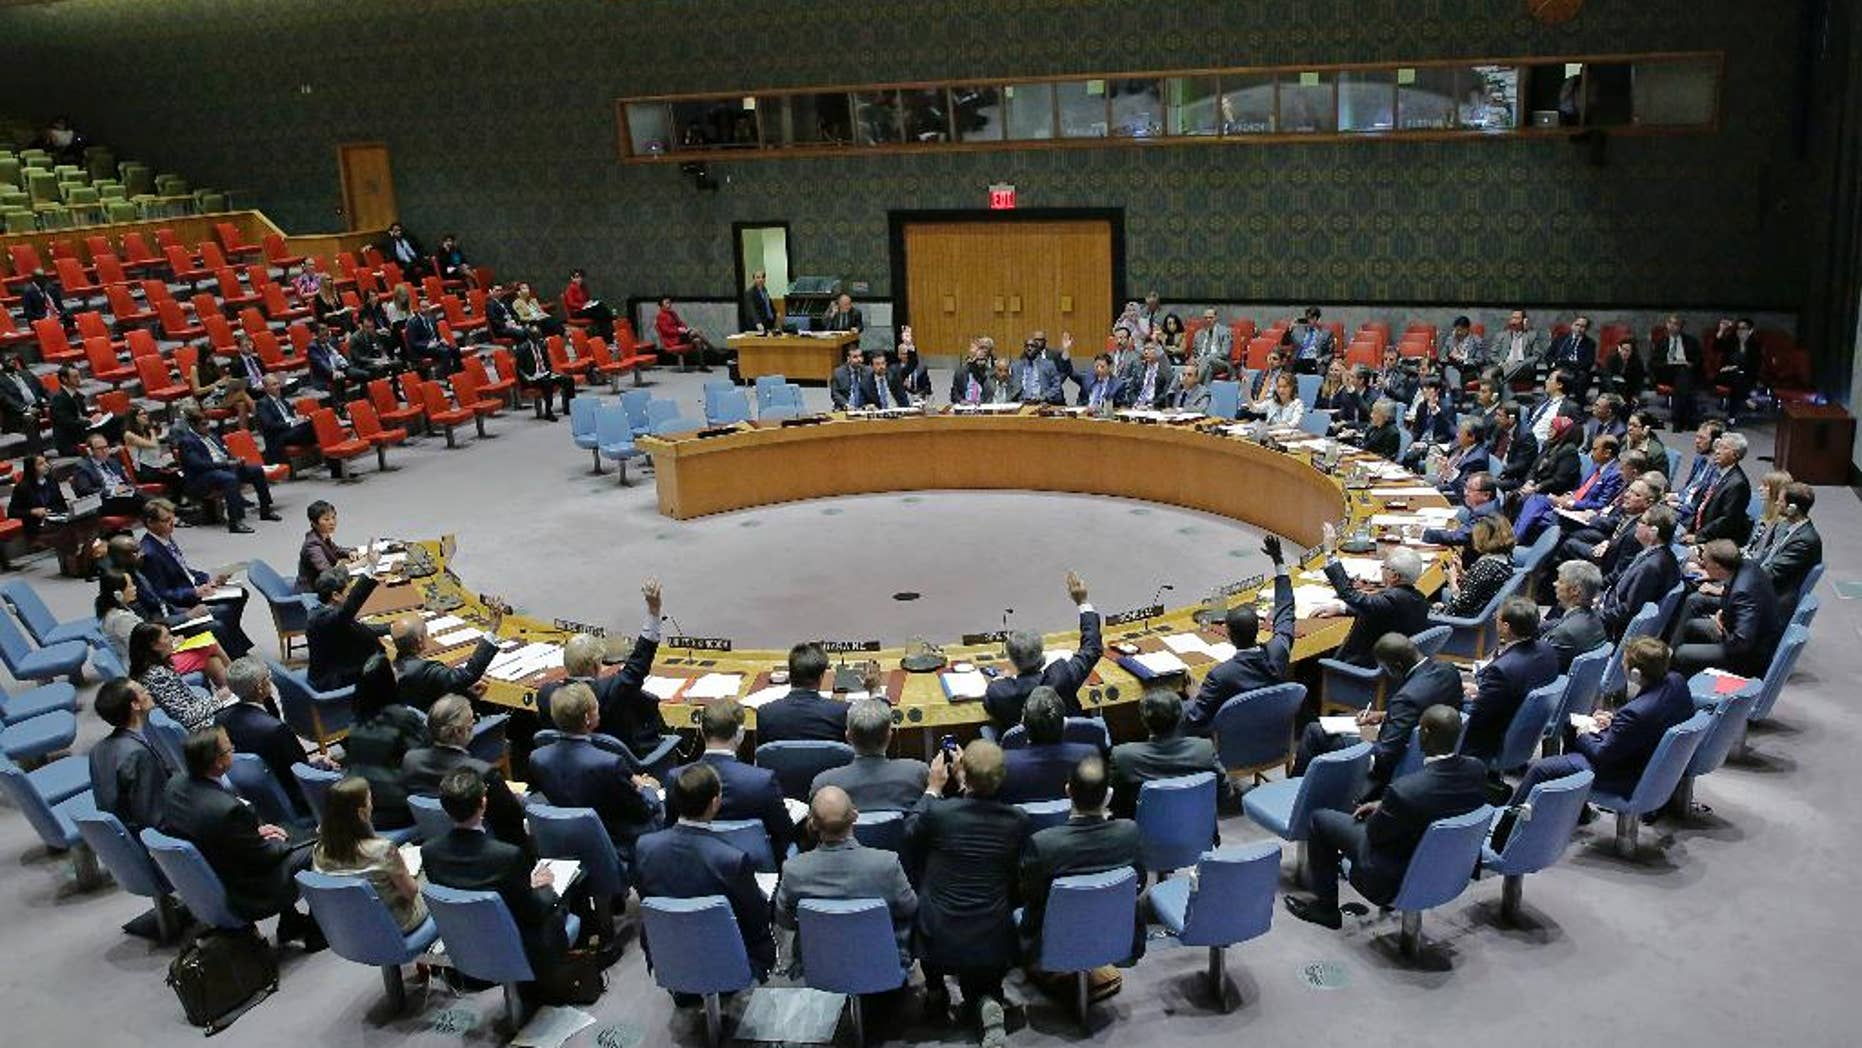 """In this photo provided by the United Nations, the U.N. Security Council unanimously adopts a resolution on aviation security and safety, Thursday, Sept. 22, 2016 at United Nations headquarters. The U.N.'s most powerful body called for stepped up screening and security checks at airports worldwide to """"detect and deter terrorist attacks."""" And it called on all countries to tighten security at airport buildings, share information about possible threats, and provide advance passenger lists so governments are aware of their transit or attempted entry. (Evan Schneider/The United Nations via AP)"""